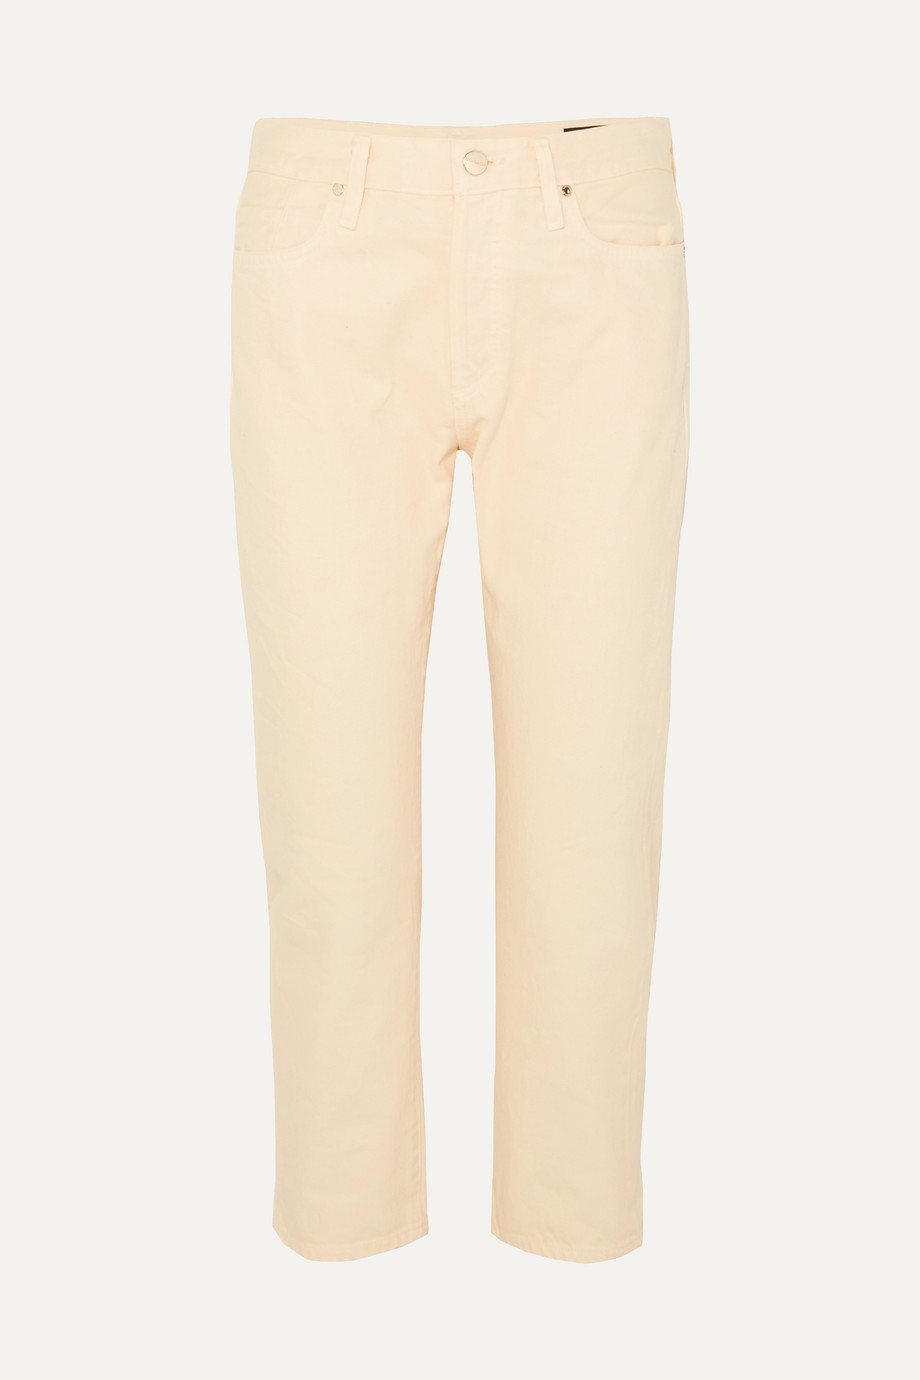 GOLDSIGN The Low Slung cropped low-rise straight-leg jeans